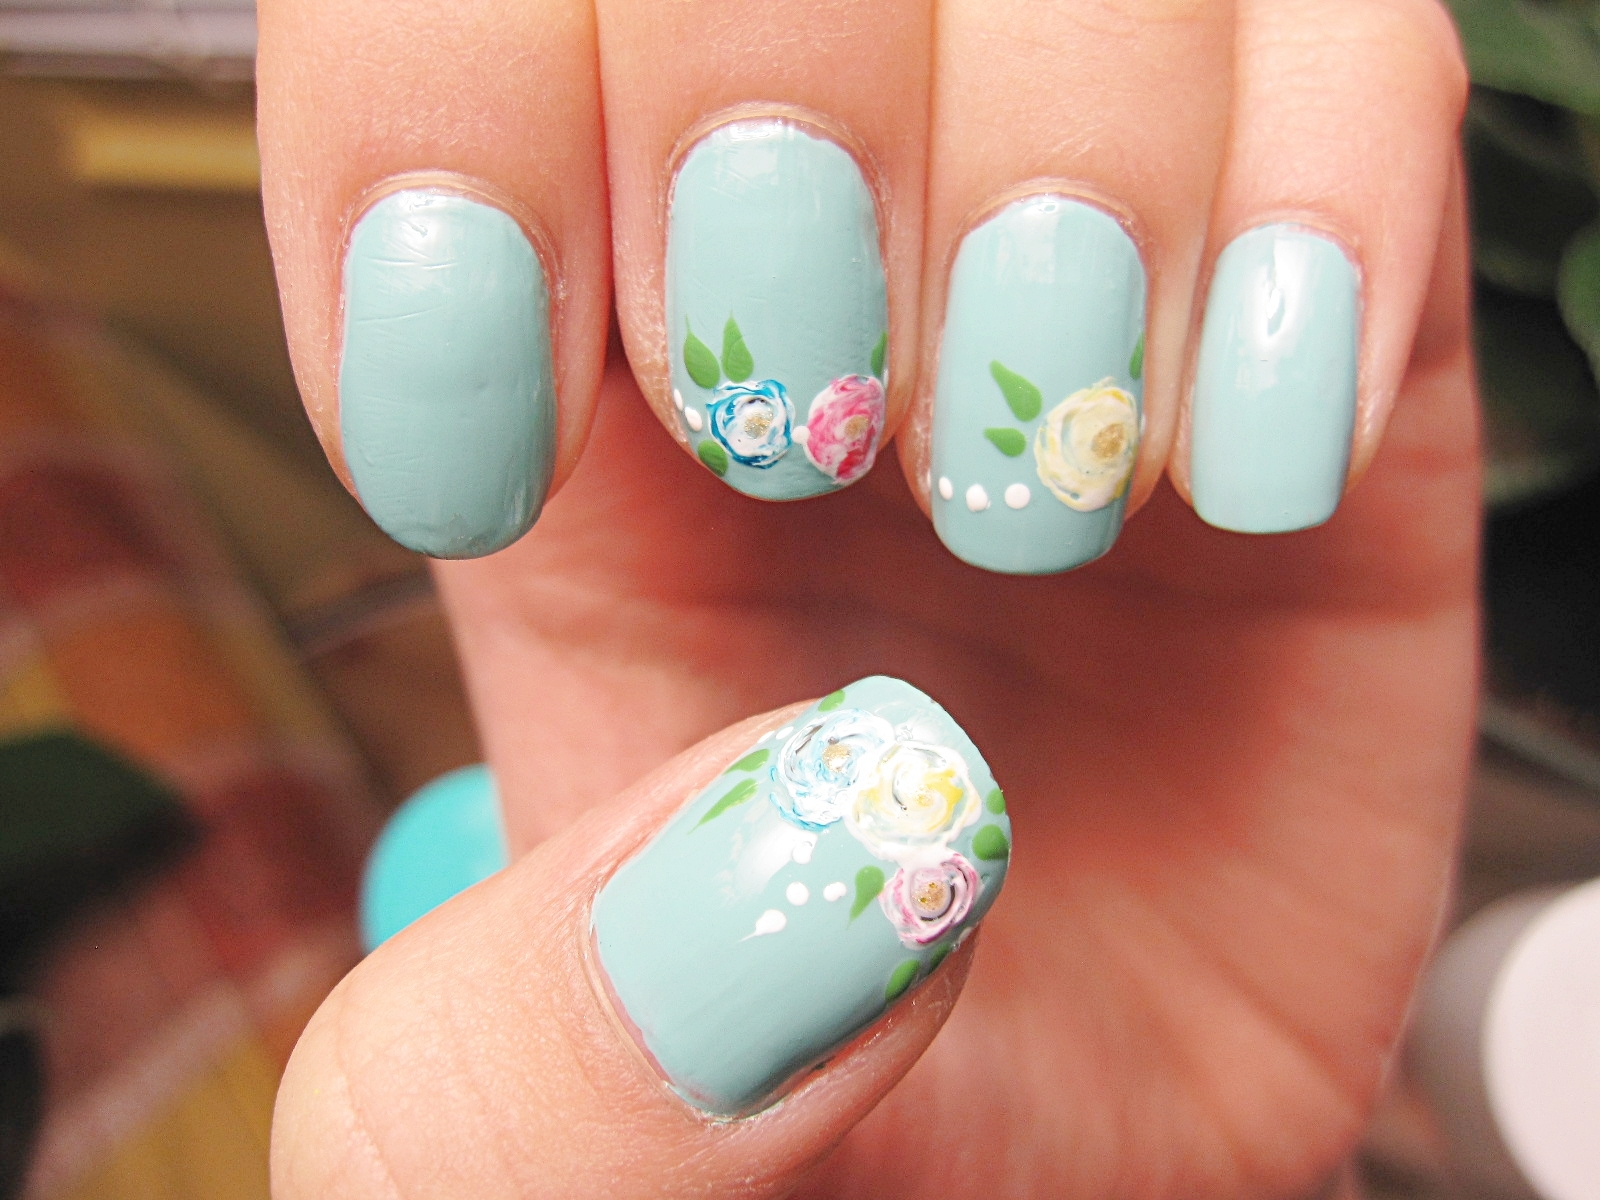 Flower Design On Nails | Nail Designs, Hair Styles, Tattoos and ...